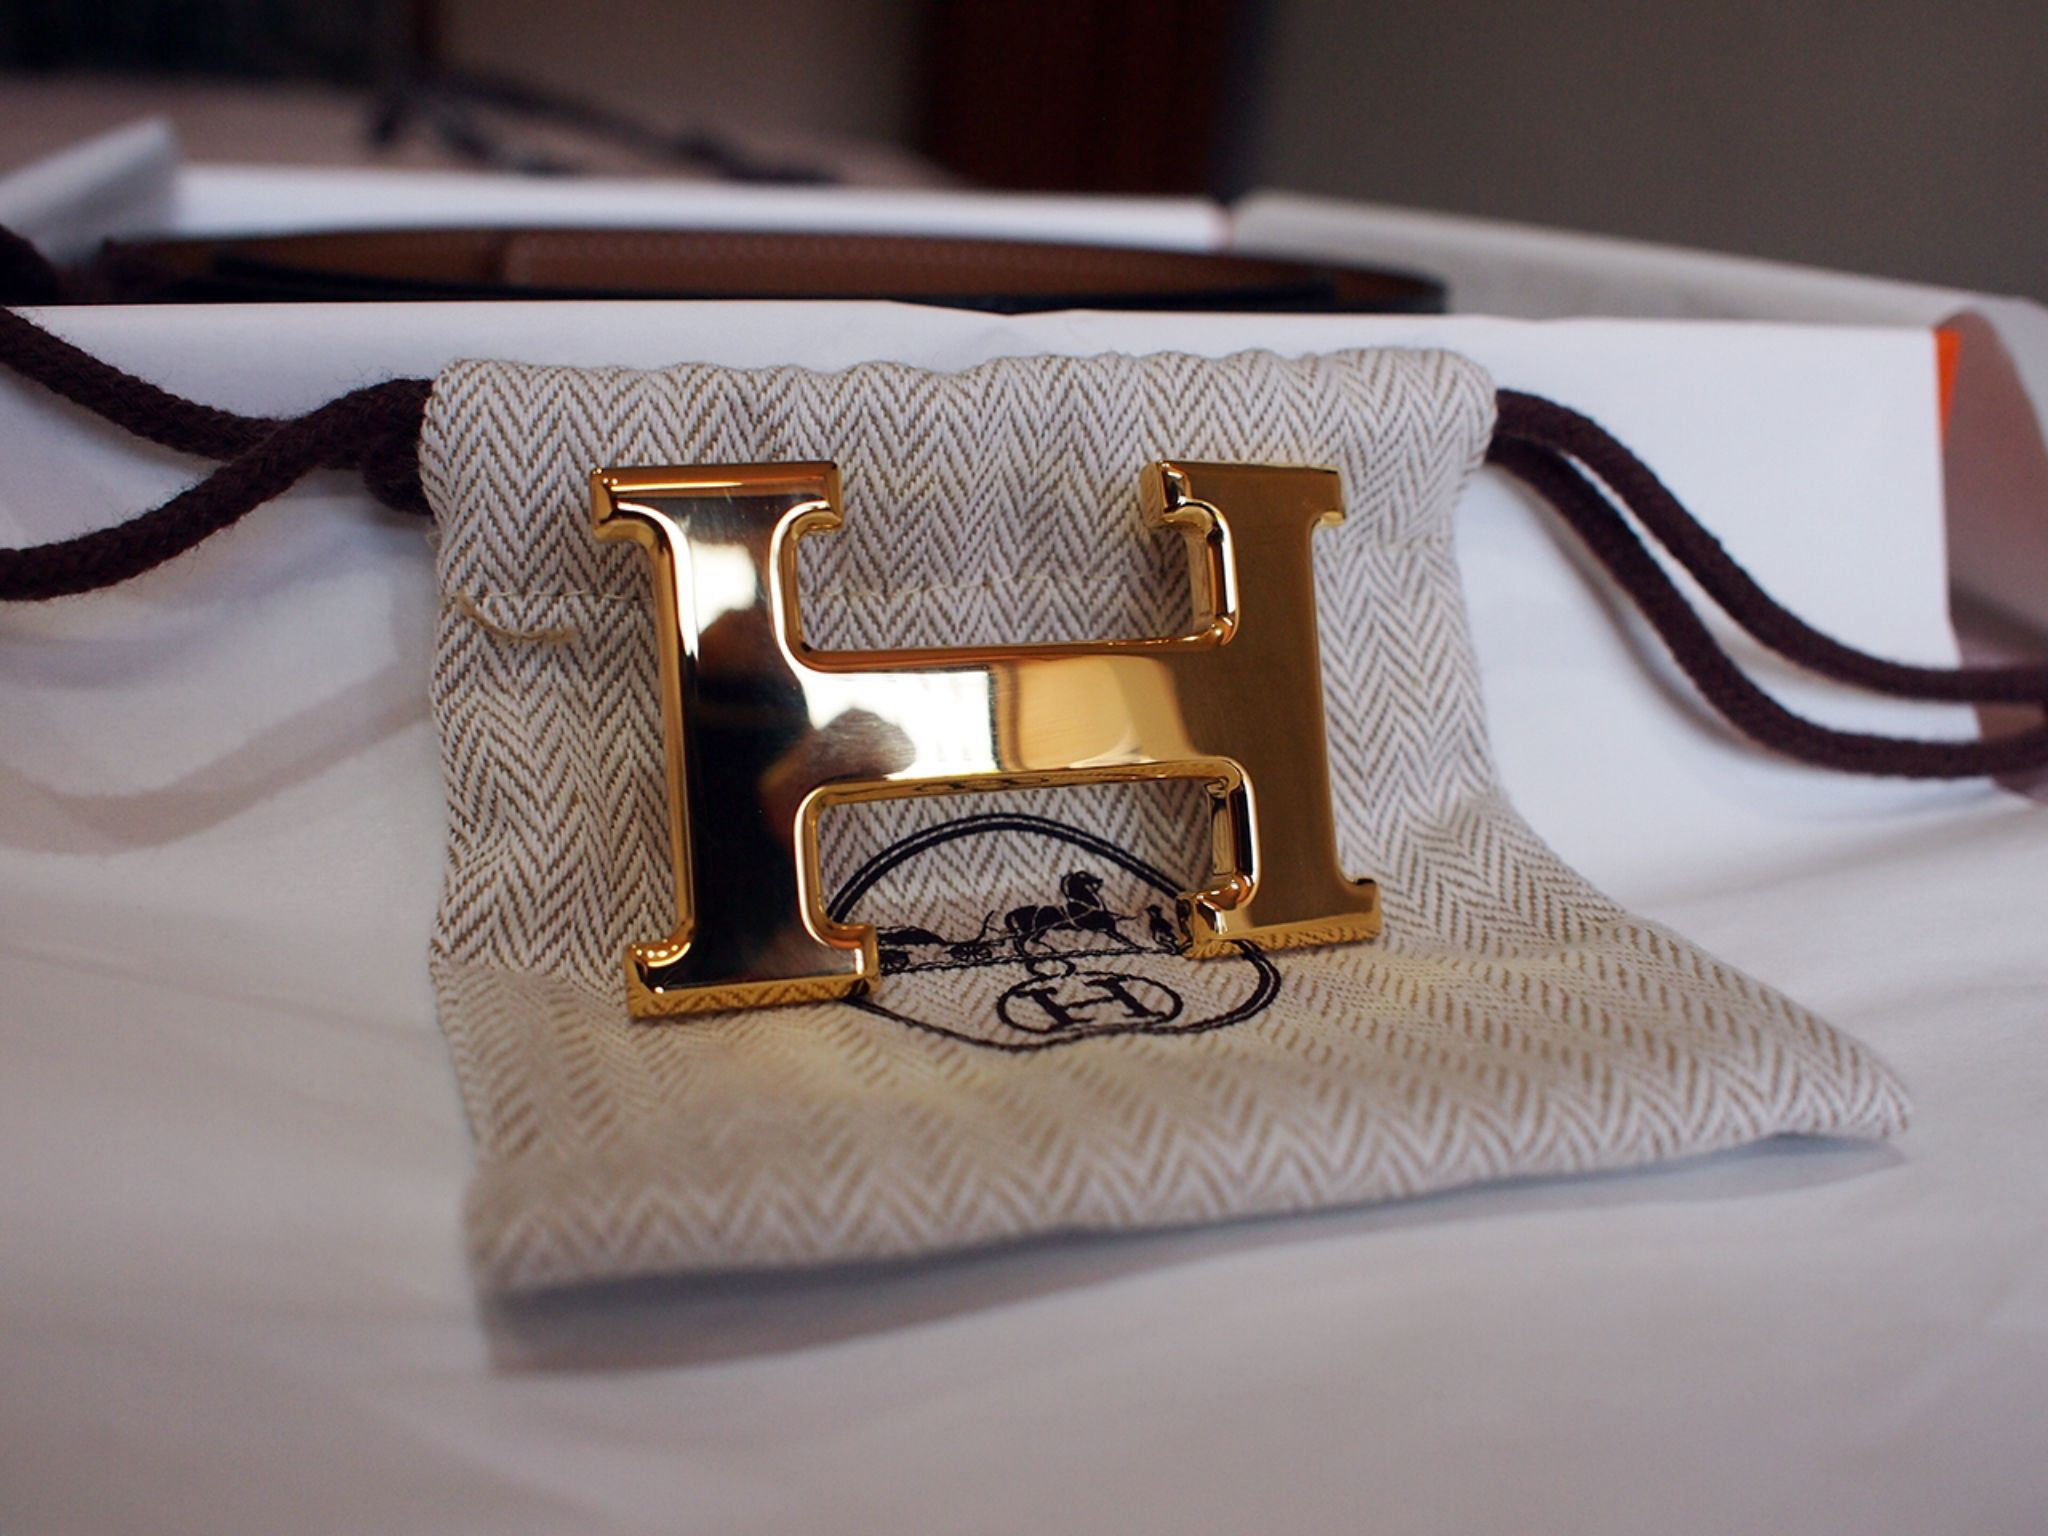 44930a8c8279 Hermes   Men s Fashion   Pinterest